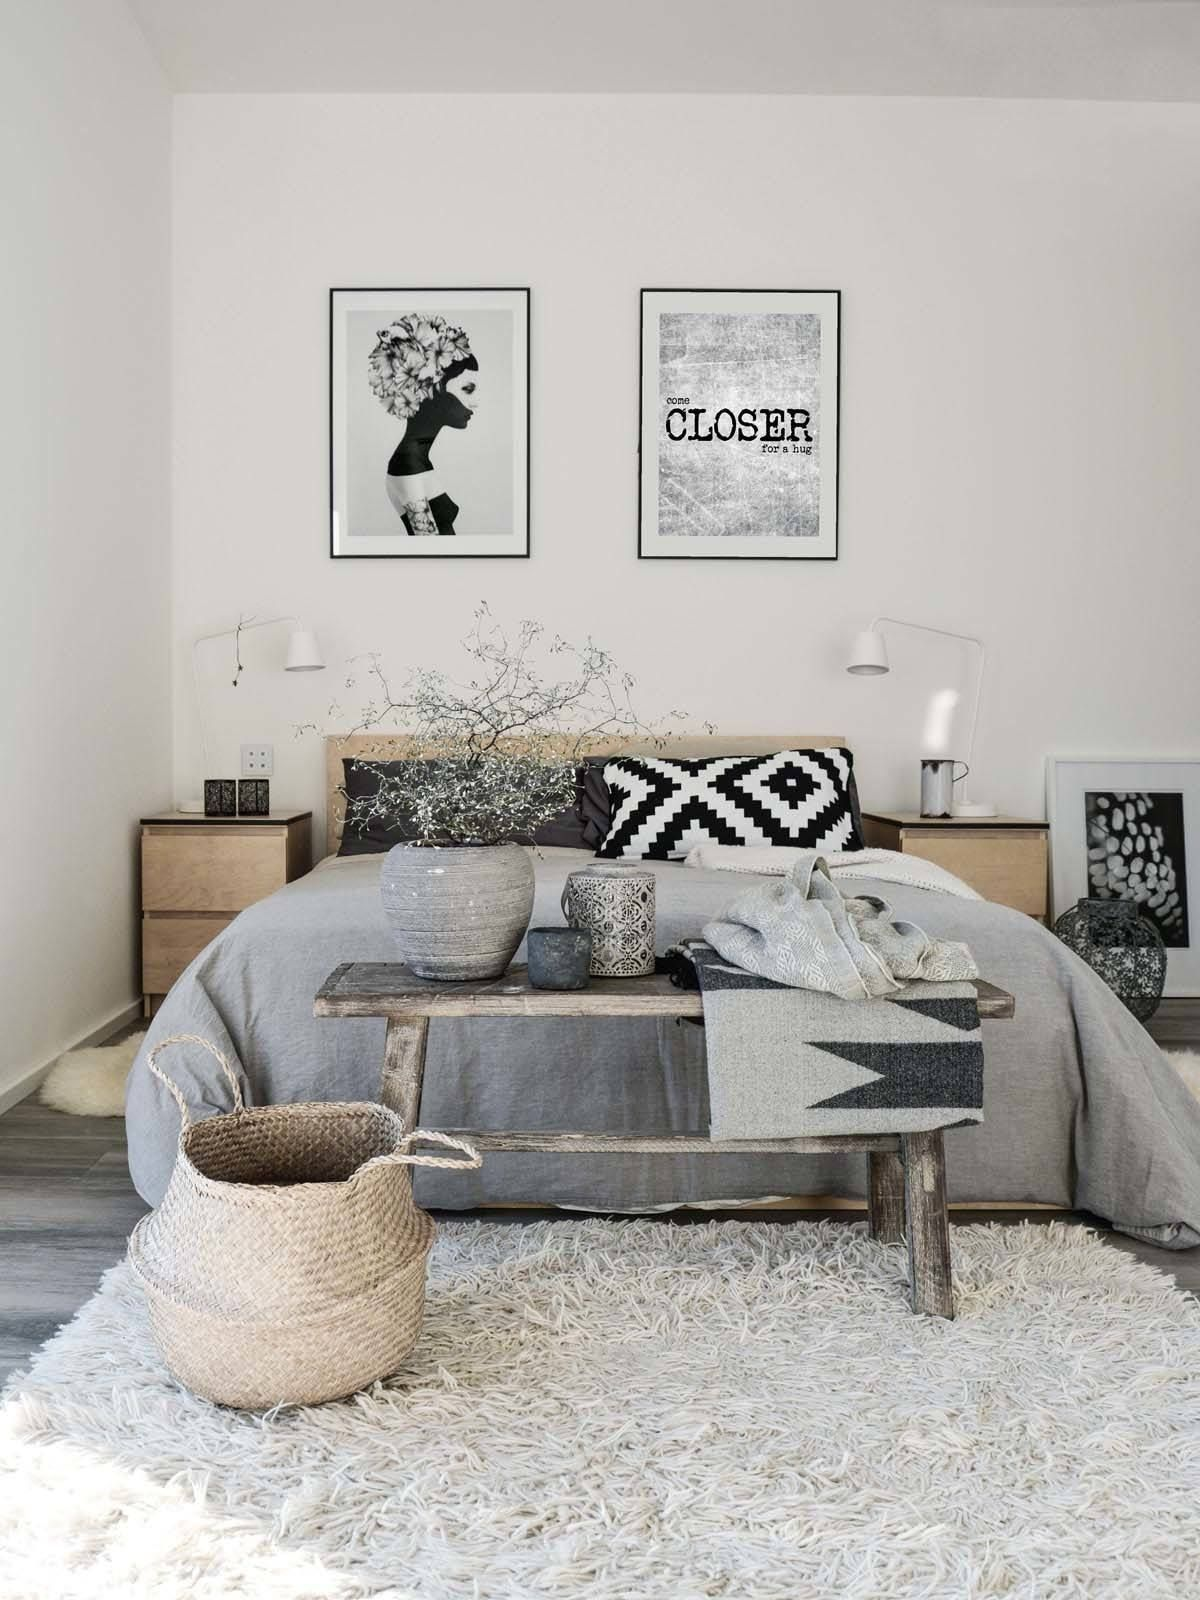 45 Scandinavian Bedroom Ideas That Are Modern And Stylish Bedroom Design Trends Remodel Bedroom Scandinavian Design Bedroom